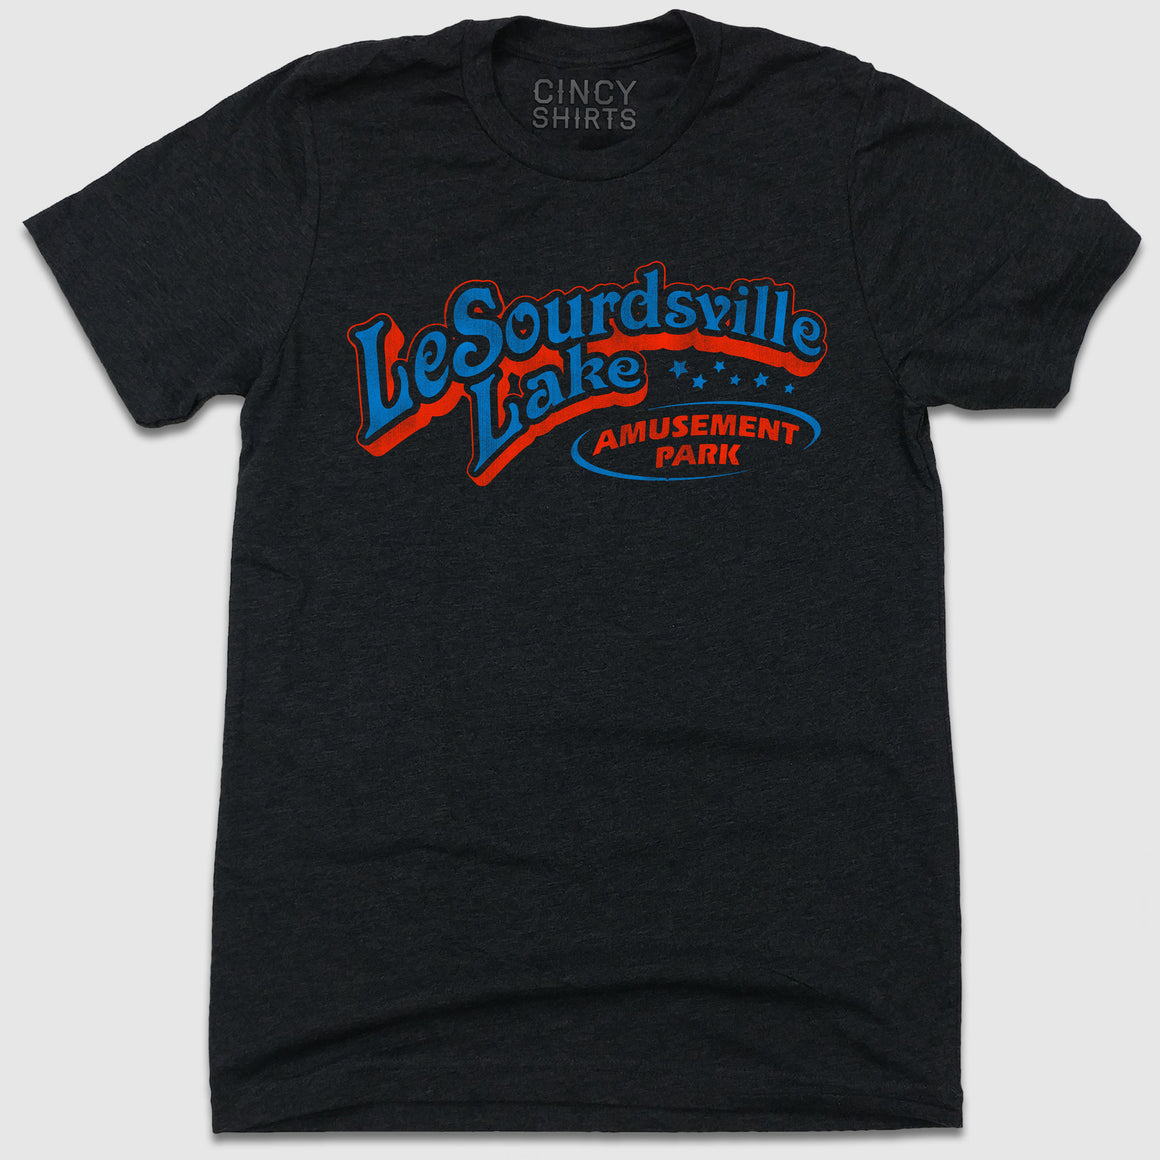 LeSourdsville Lake Amusement Park - Cincy Shirts